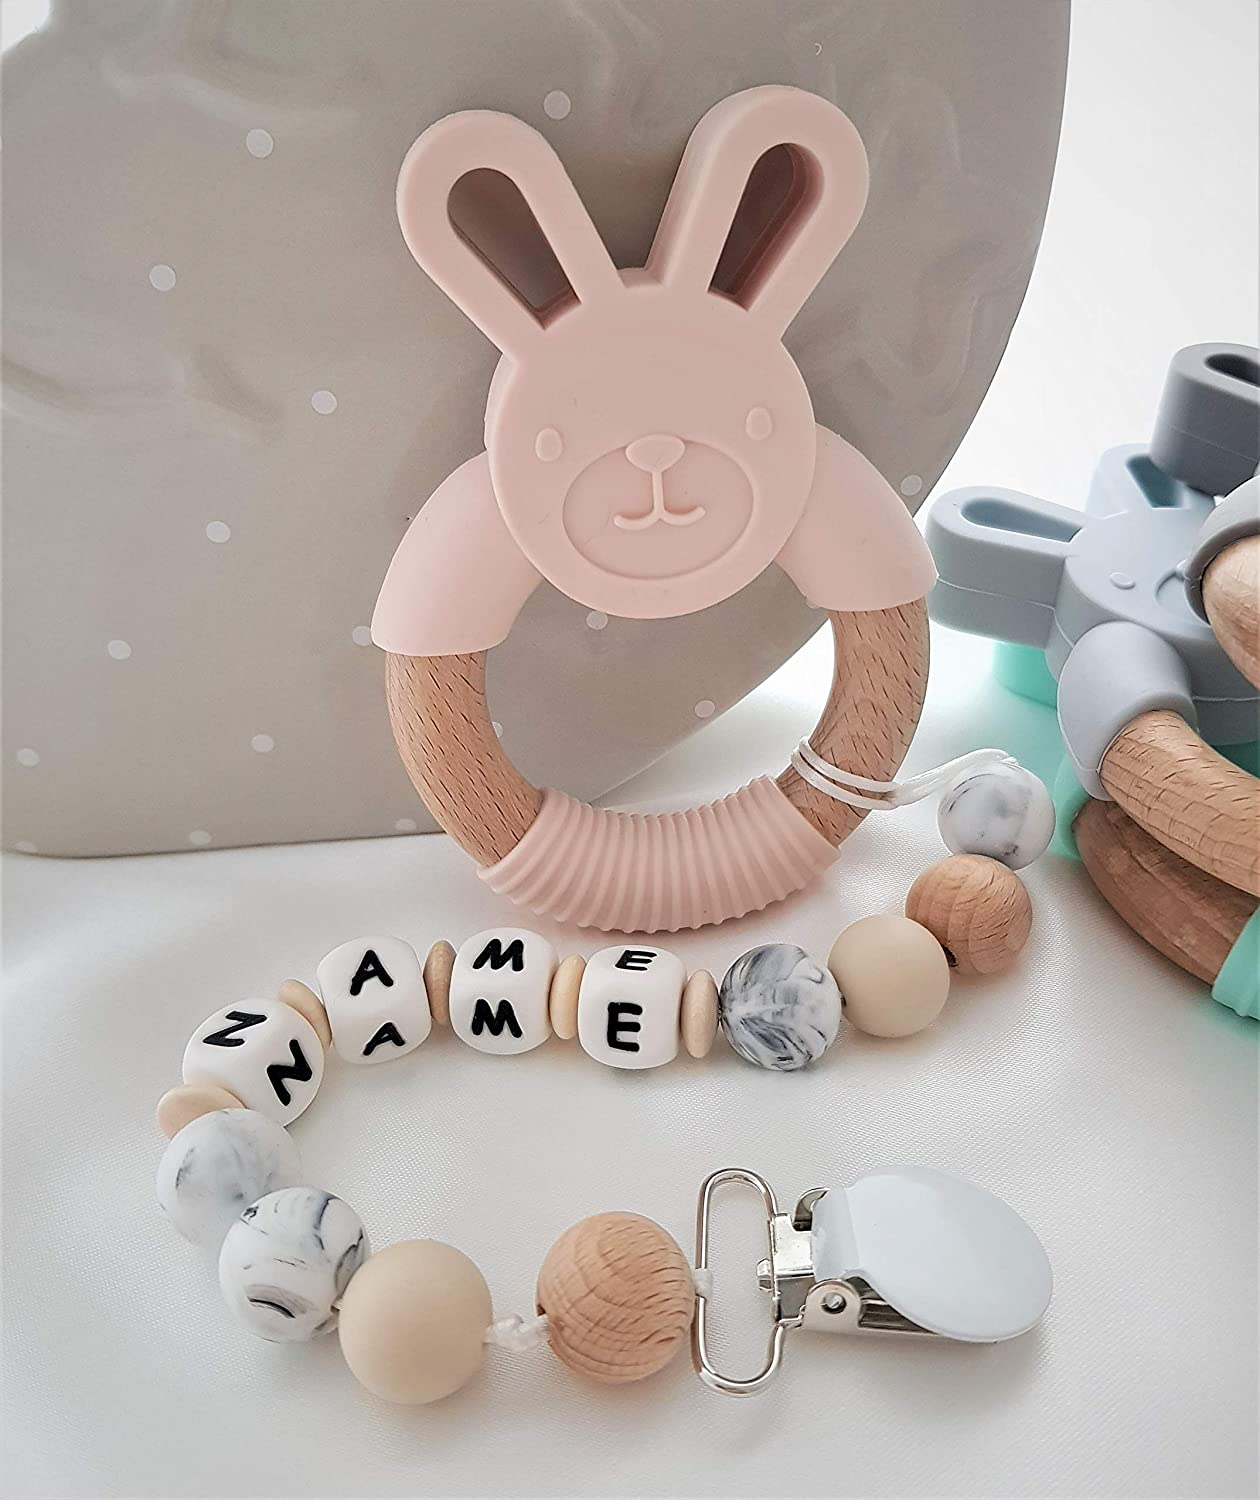 Personalised Silicone /& Wooden Baby Teether//Bunny Ring Teether//Personalised Silicone Soother//Teether Peach